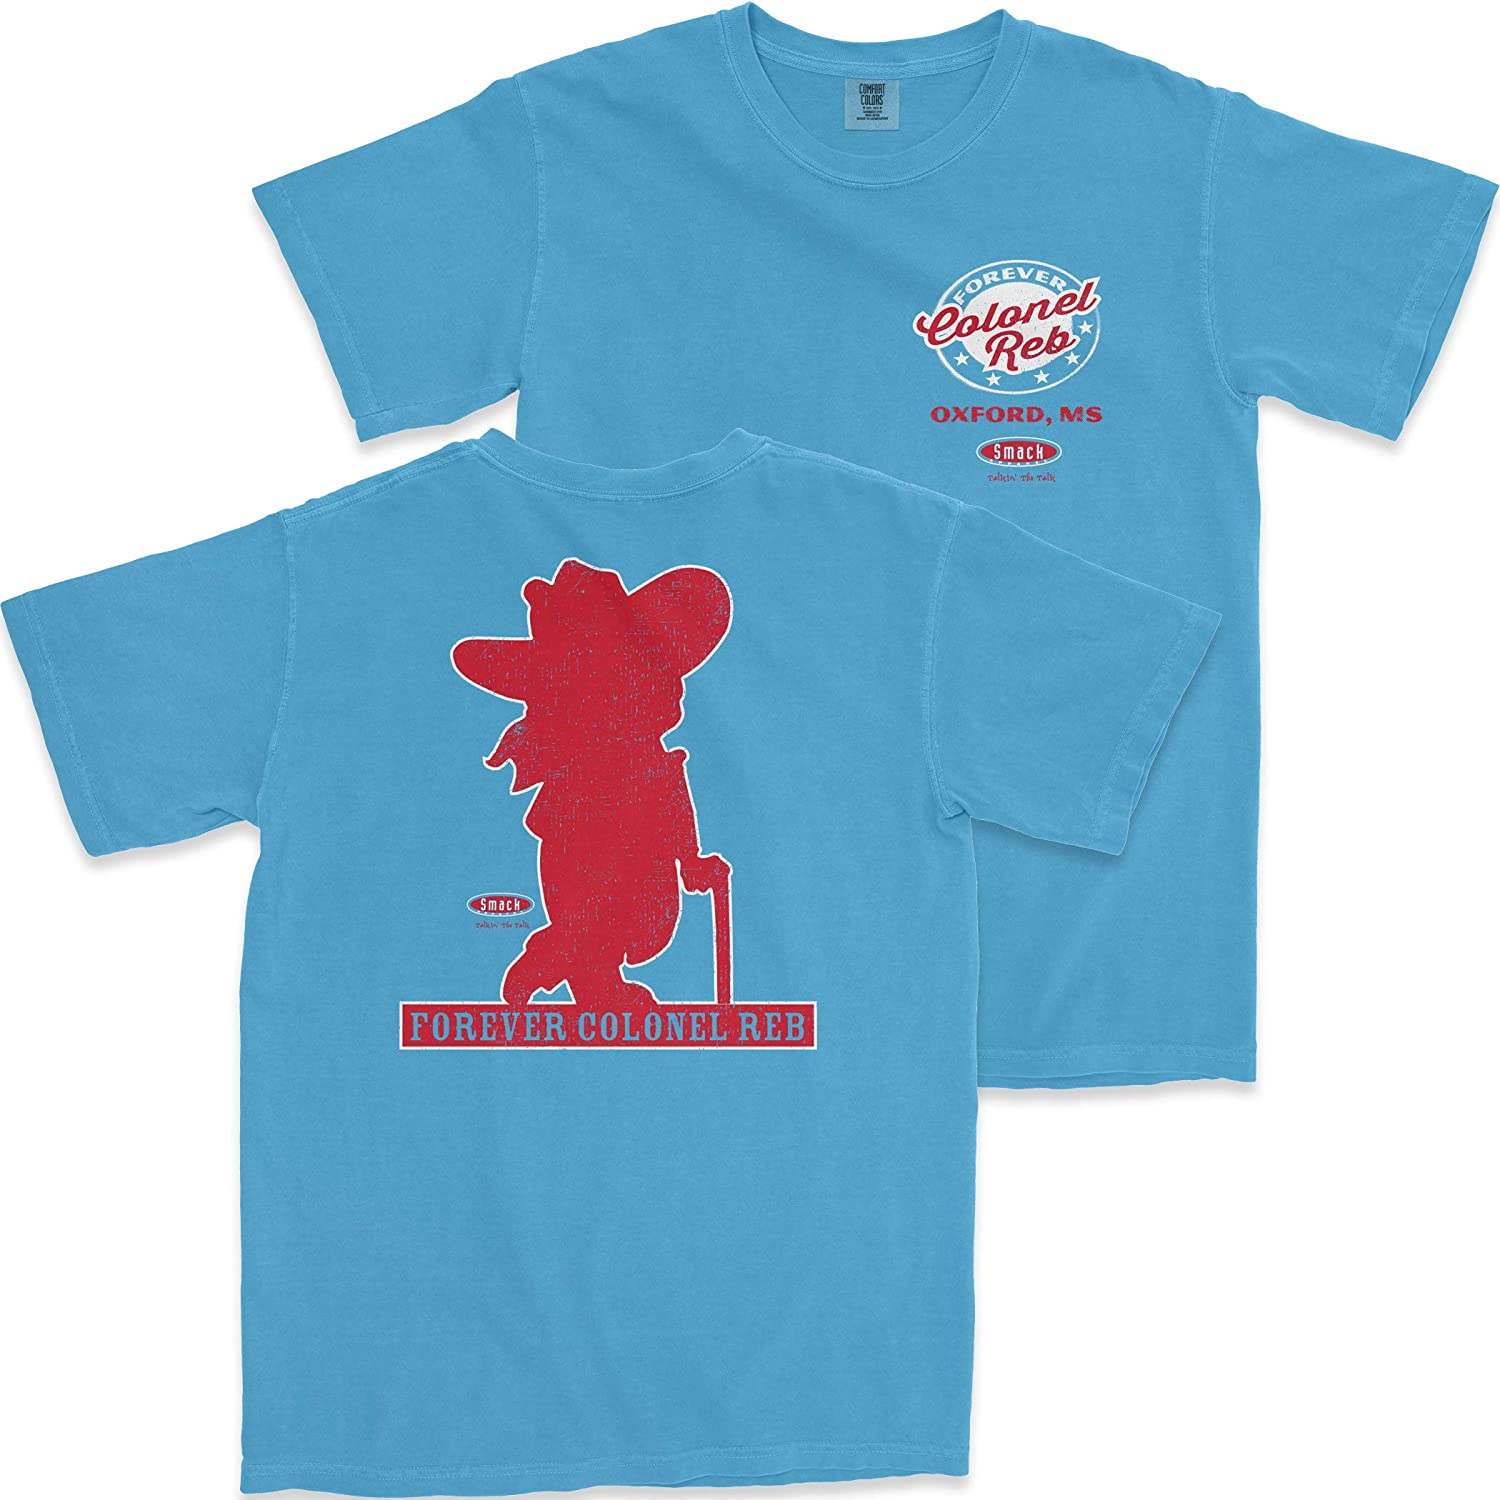 Sm-5X or Sticker Ole Miss Football Fans Forever Colonel Reb T Shirt